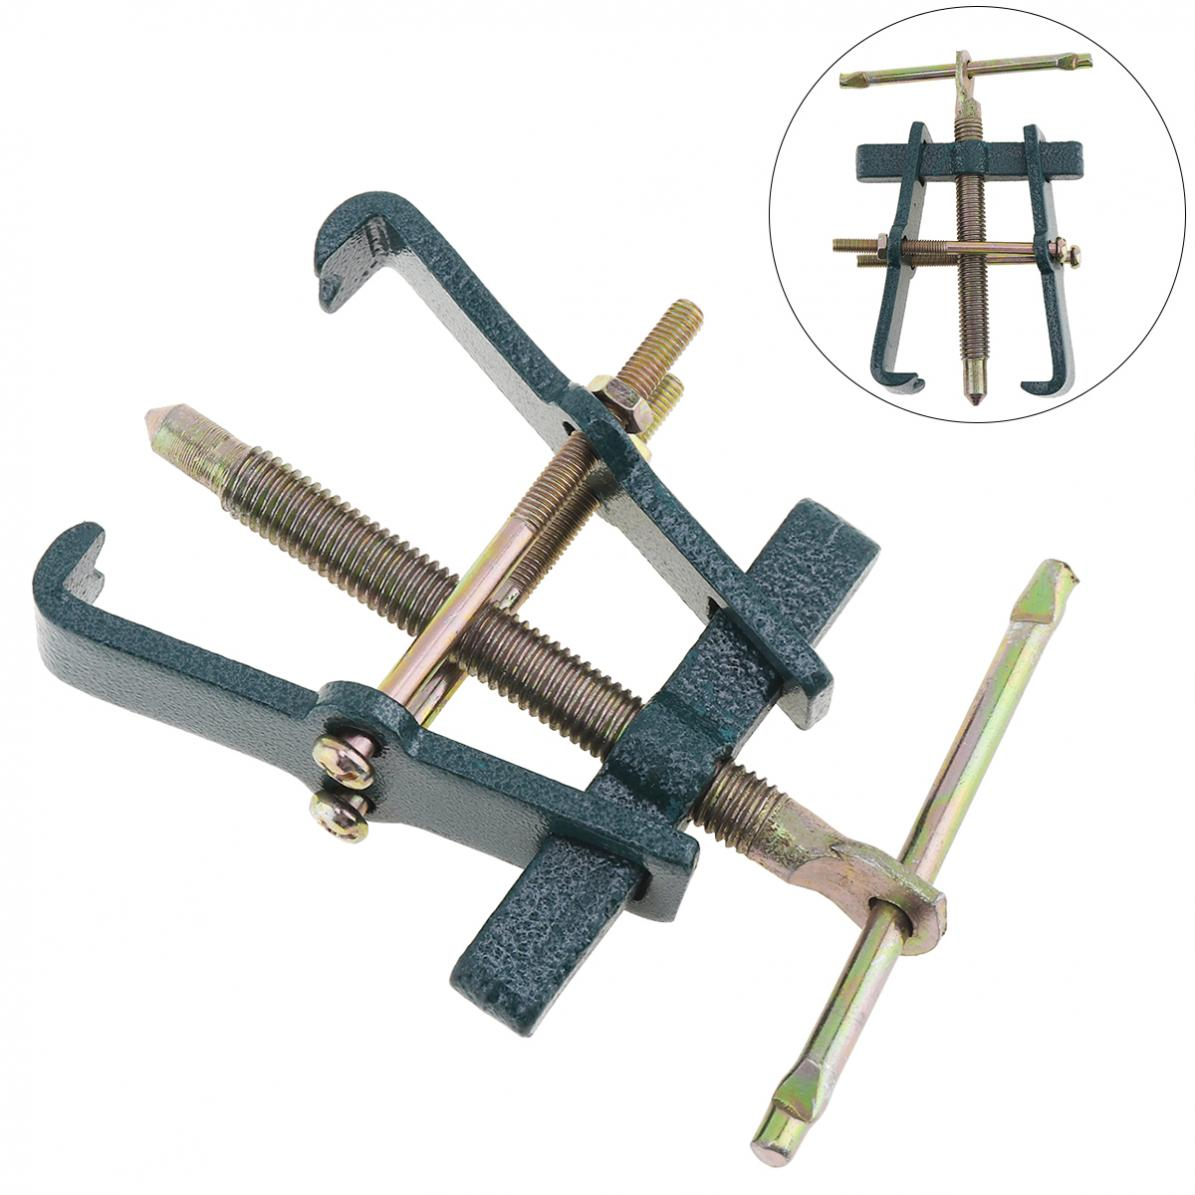 Practical 3 Inch Two-claw Puller Separate Lifting Device Multi-purpose Pull Strengthen Bearing Rama for Auto Mechanic Hand Tools